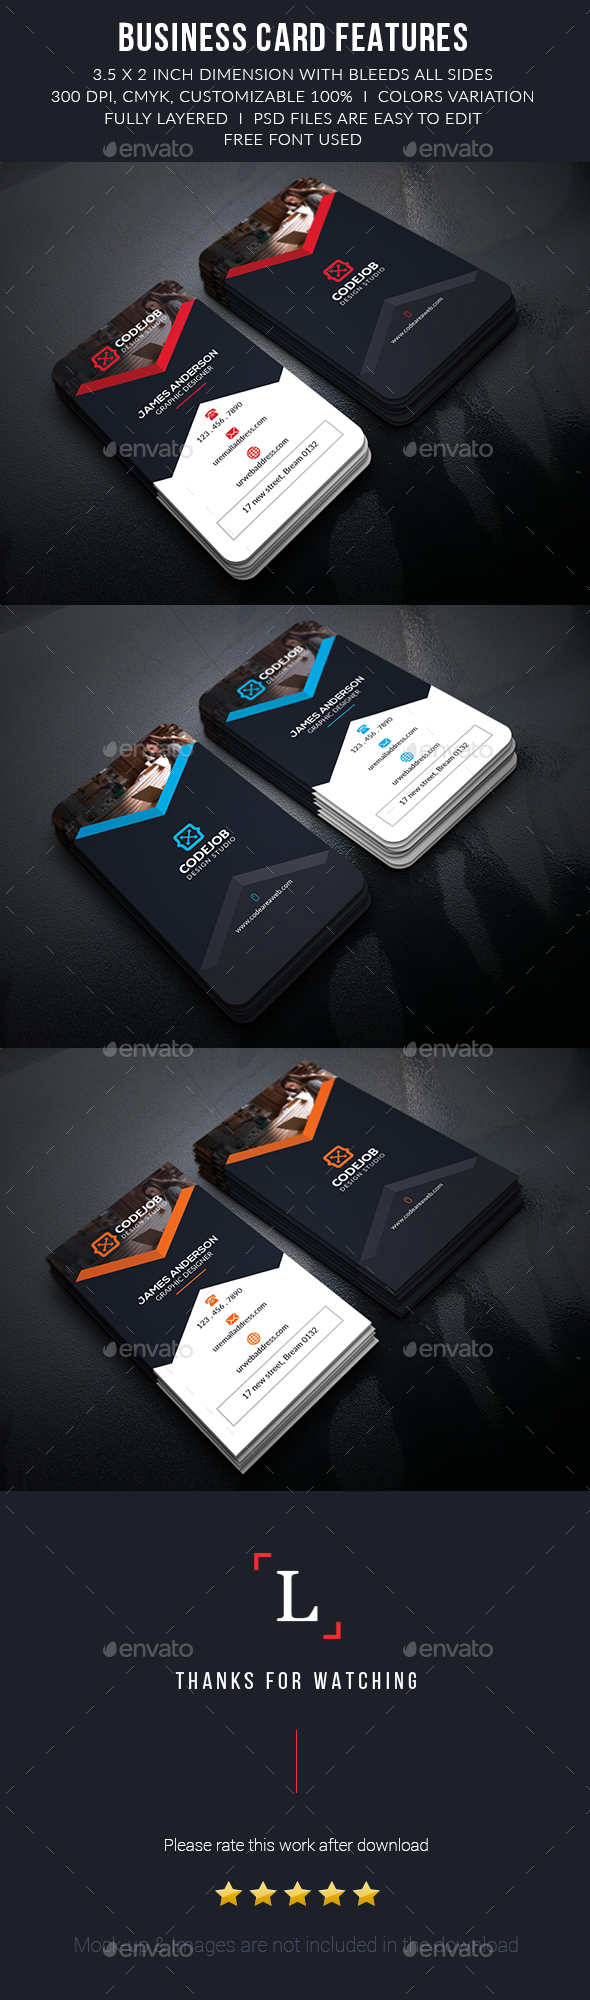 Codejob Corporate Business Cards - Print Templates